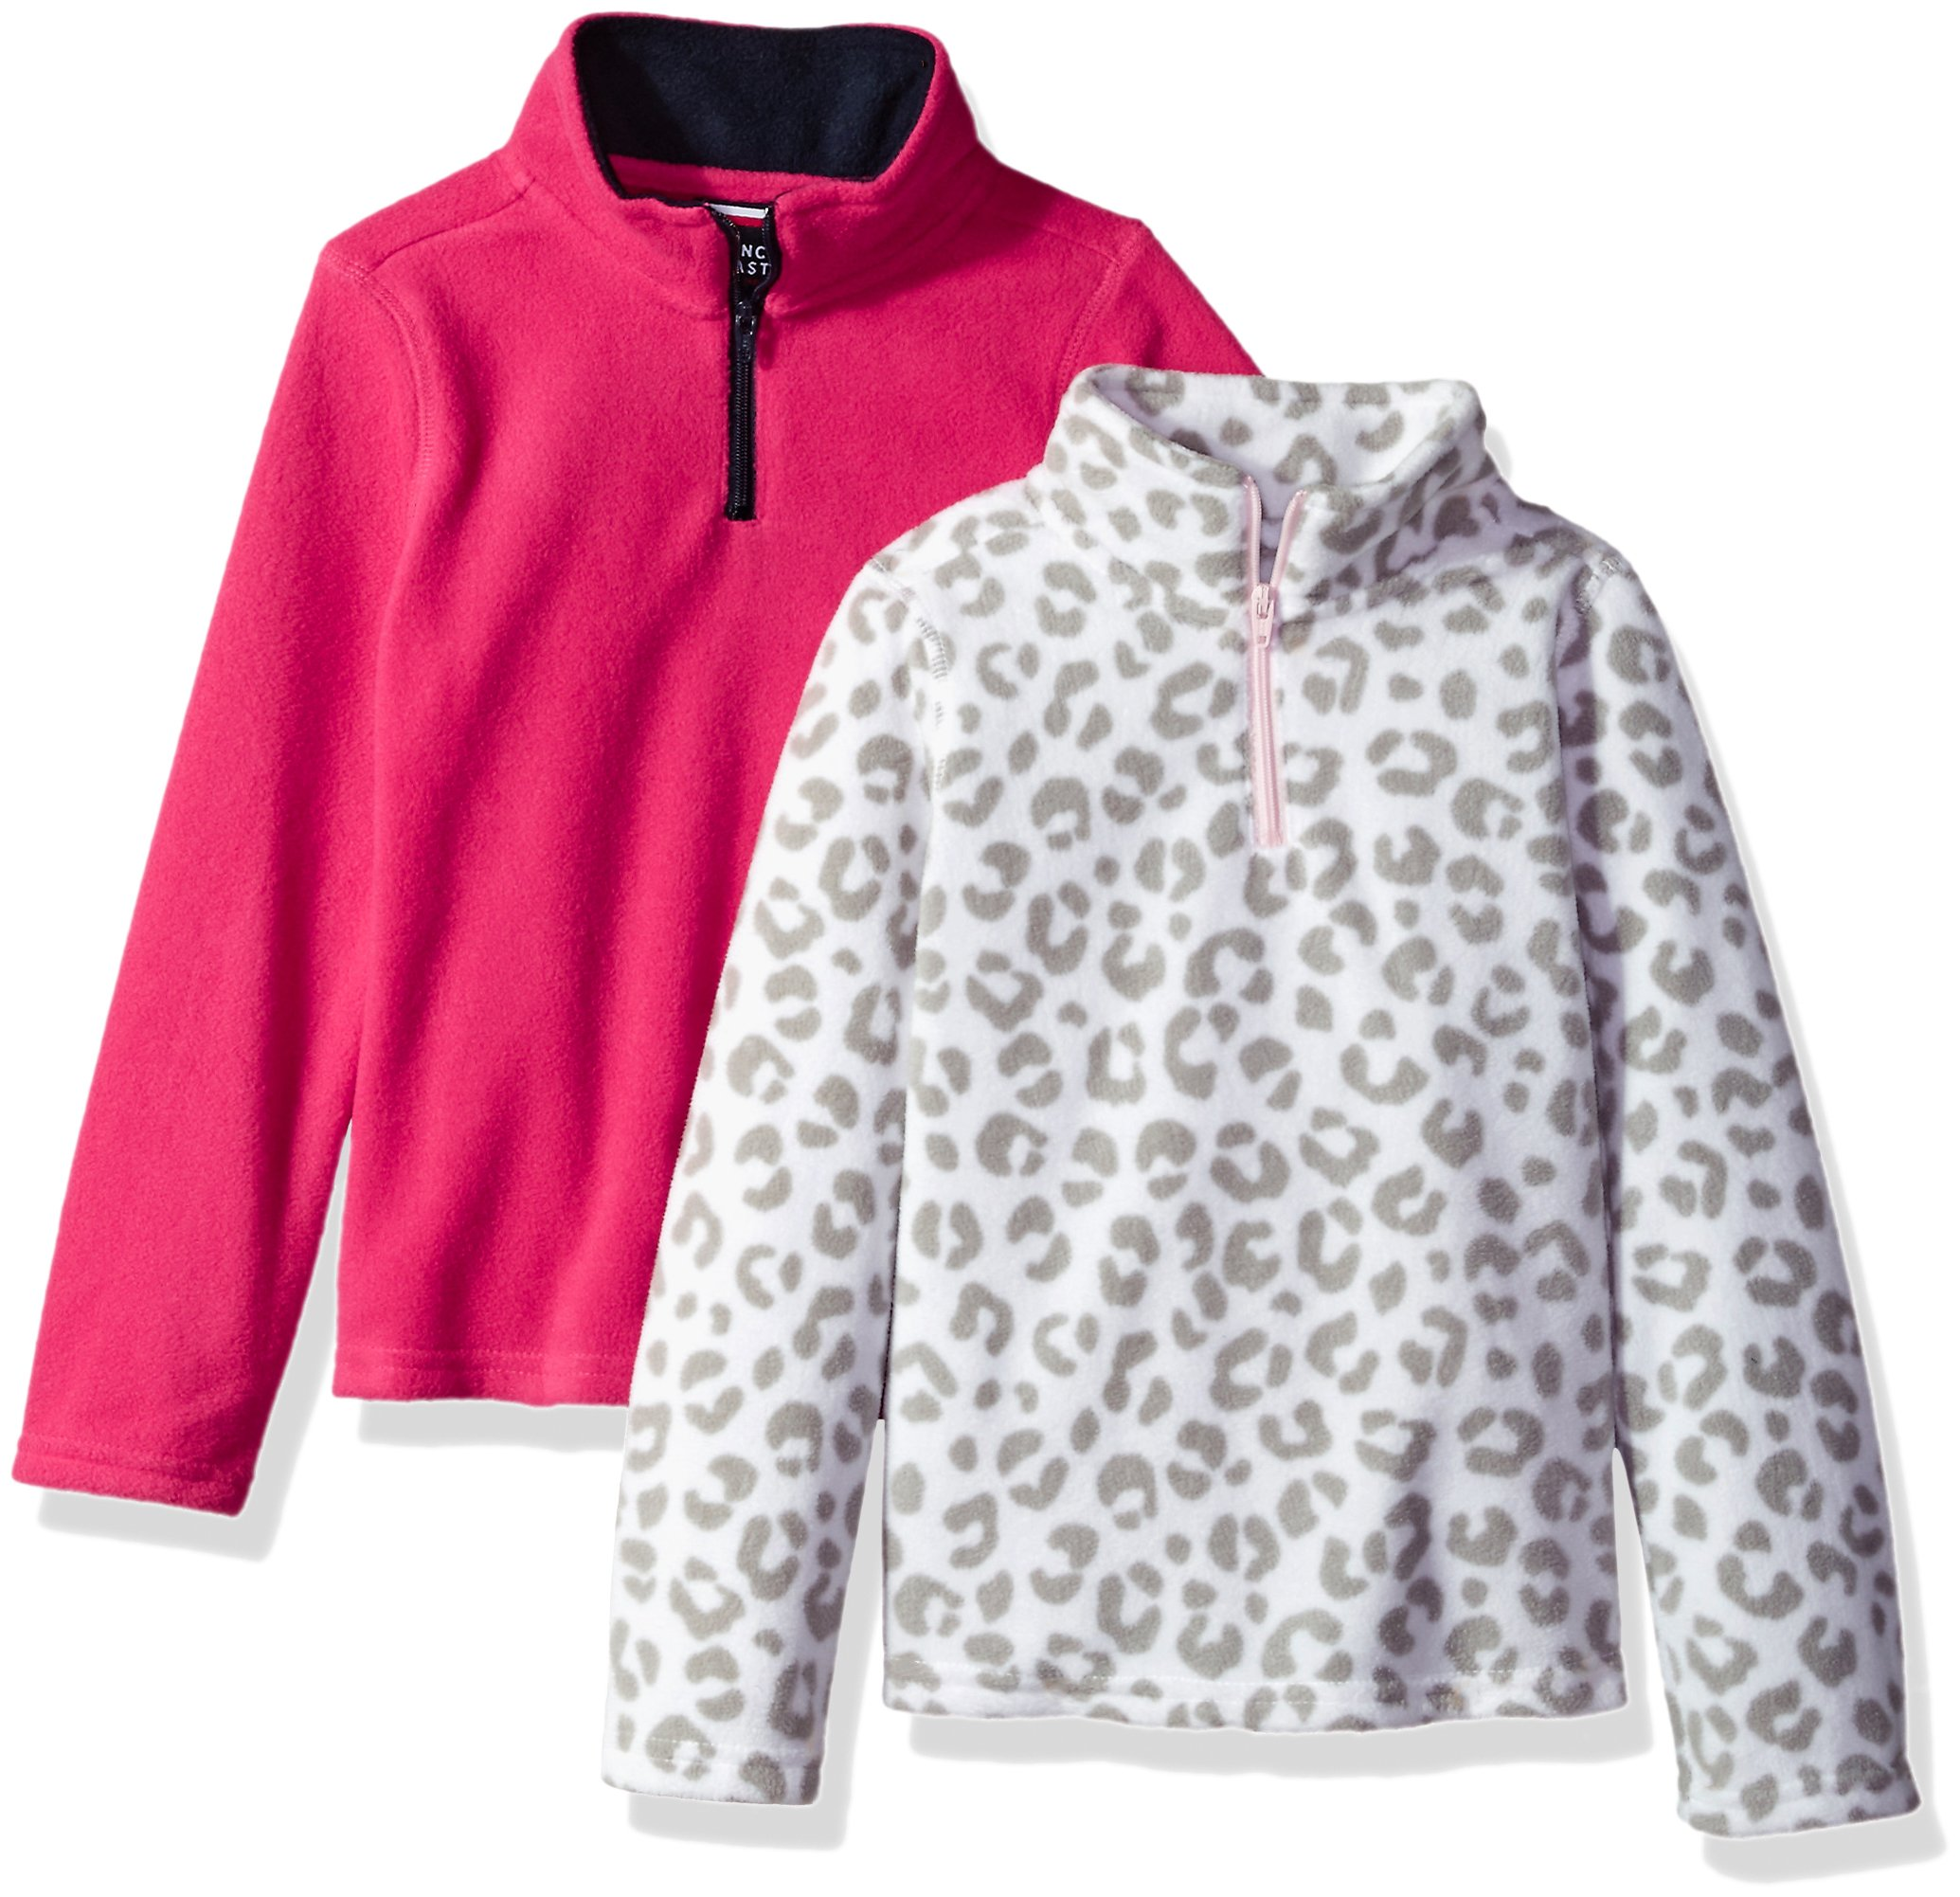 French Toast Girls' Little Long Sleeve Microfleece 2-Pack, Fuchsia Burst/Leopard Print, 5 by French Toast